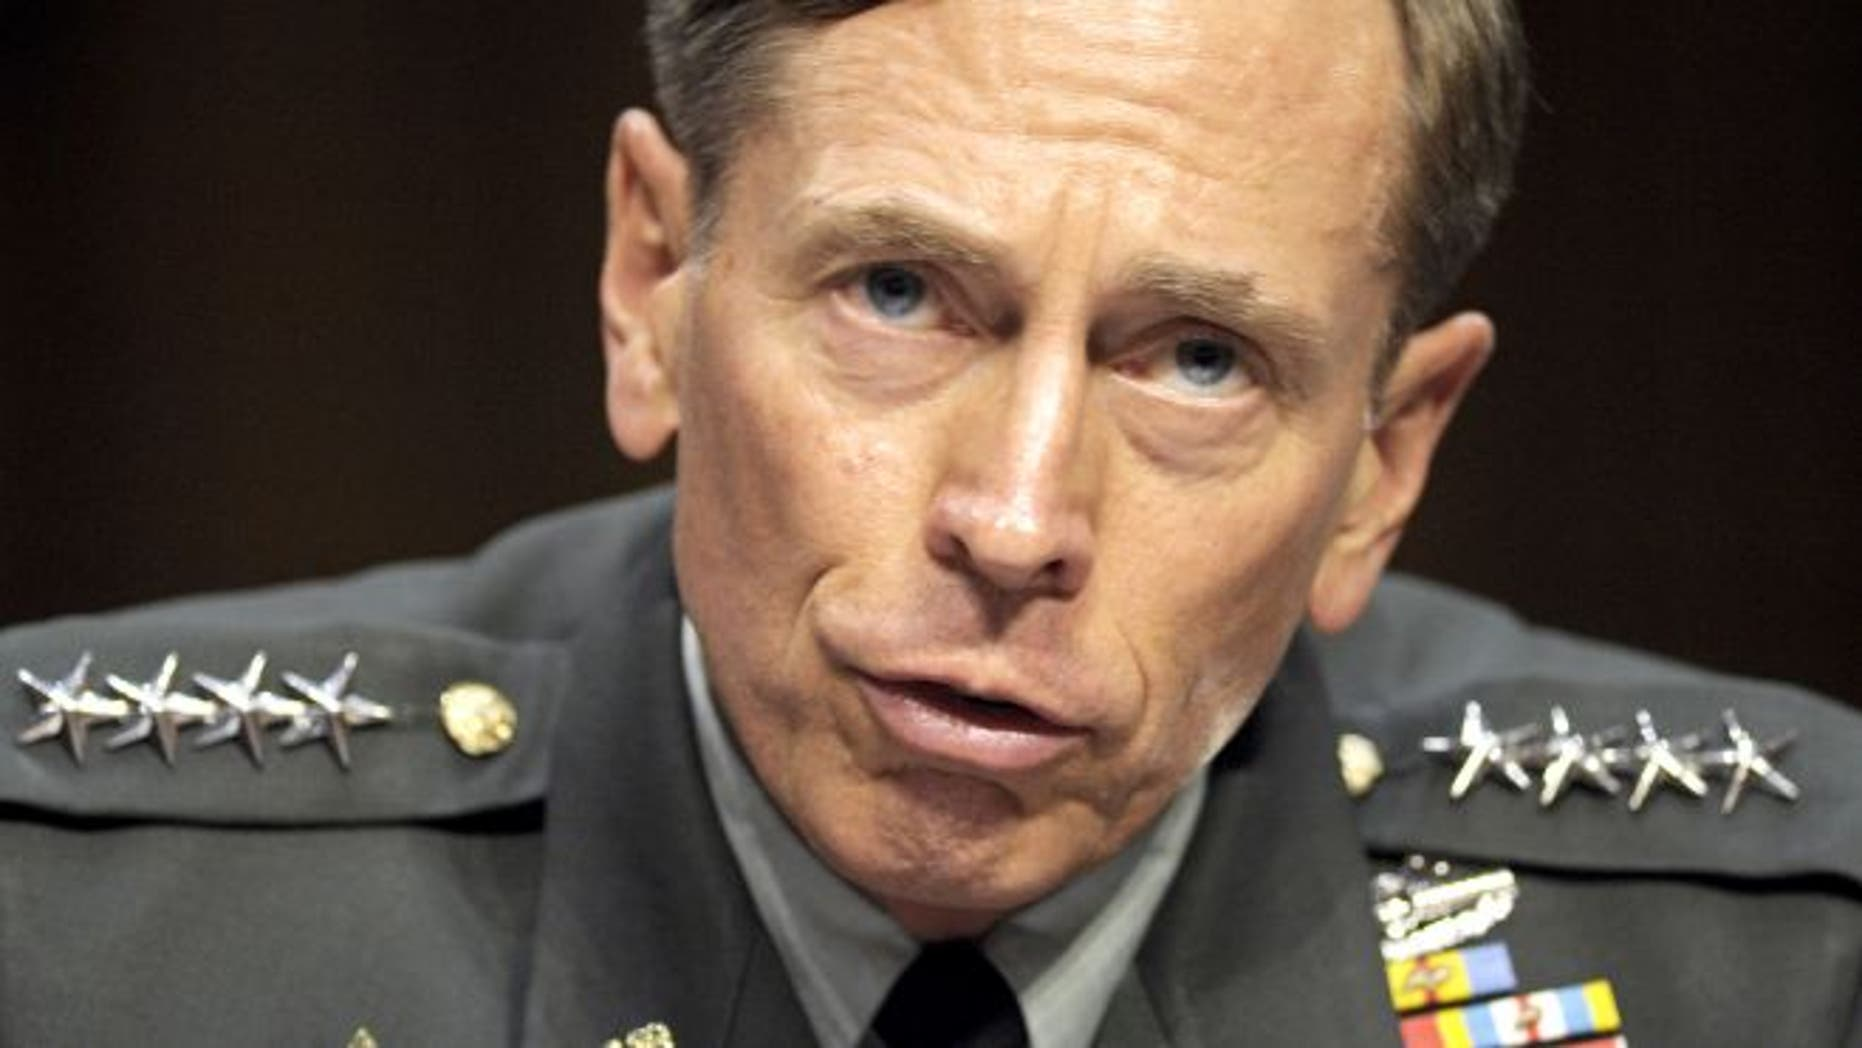 June 23,2011: The Senate has voted to confirm Gen. David Petraeus to be the nation's CIA director who is seen here testifying on Capitol Hill.